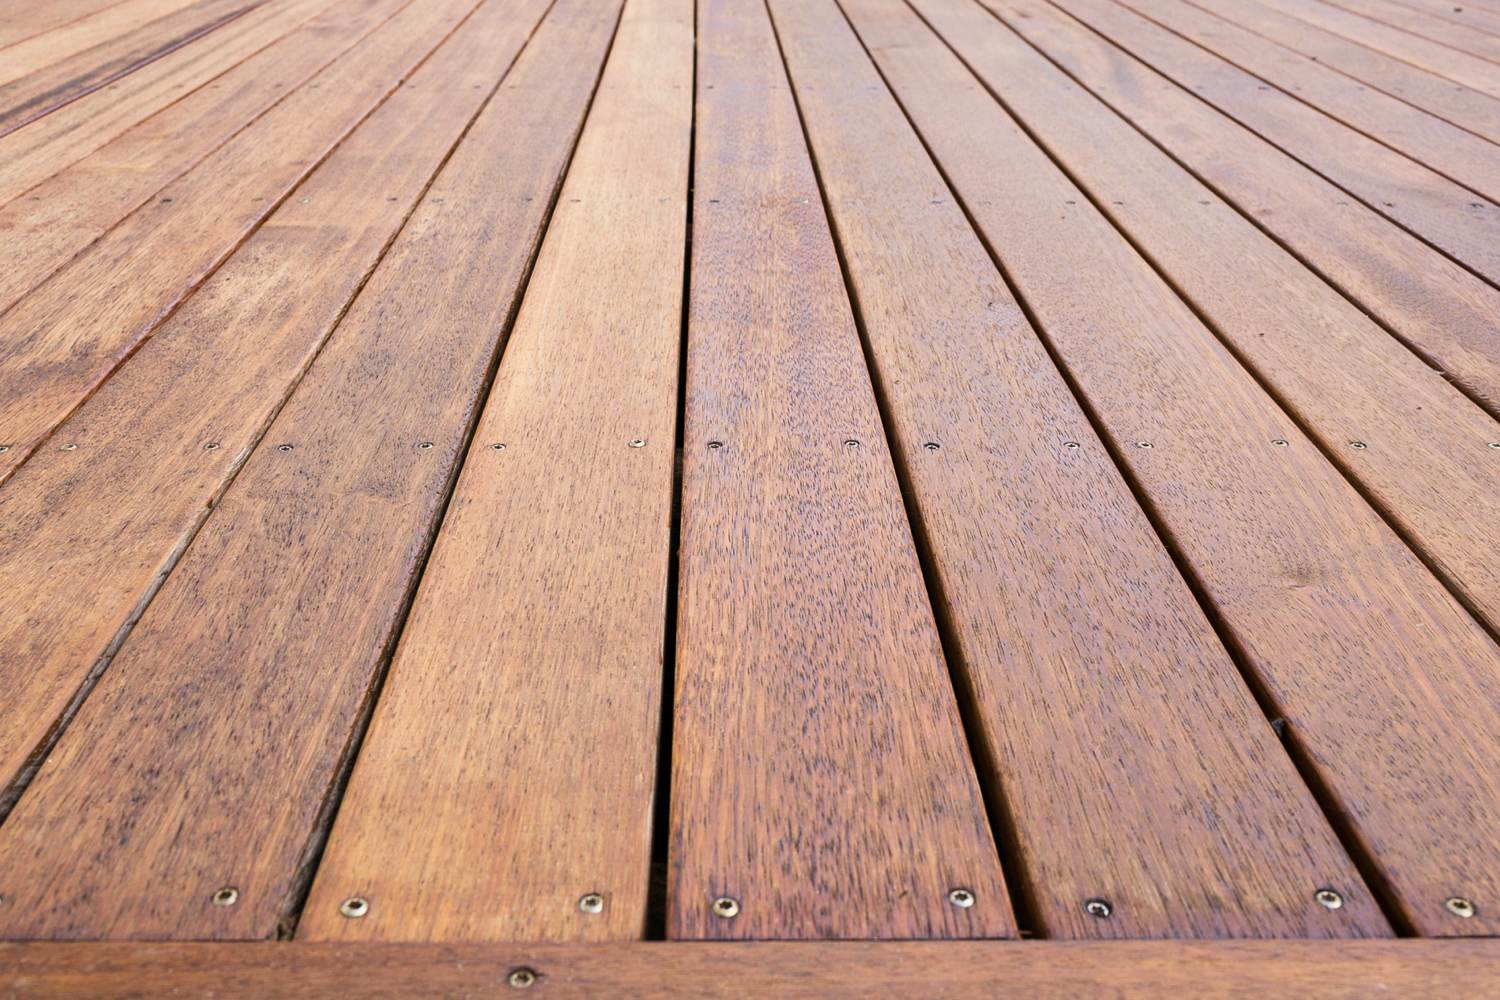 Novascape build decks using merbau decking boards